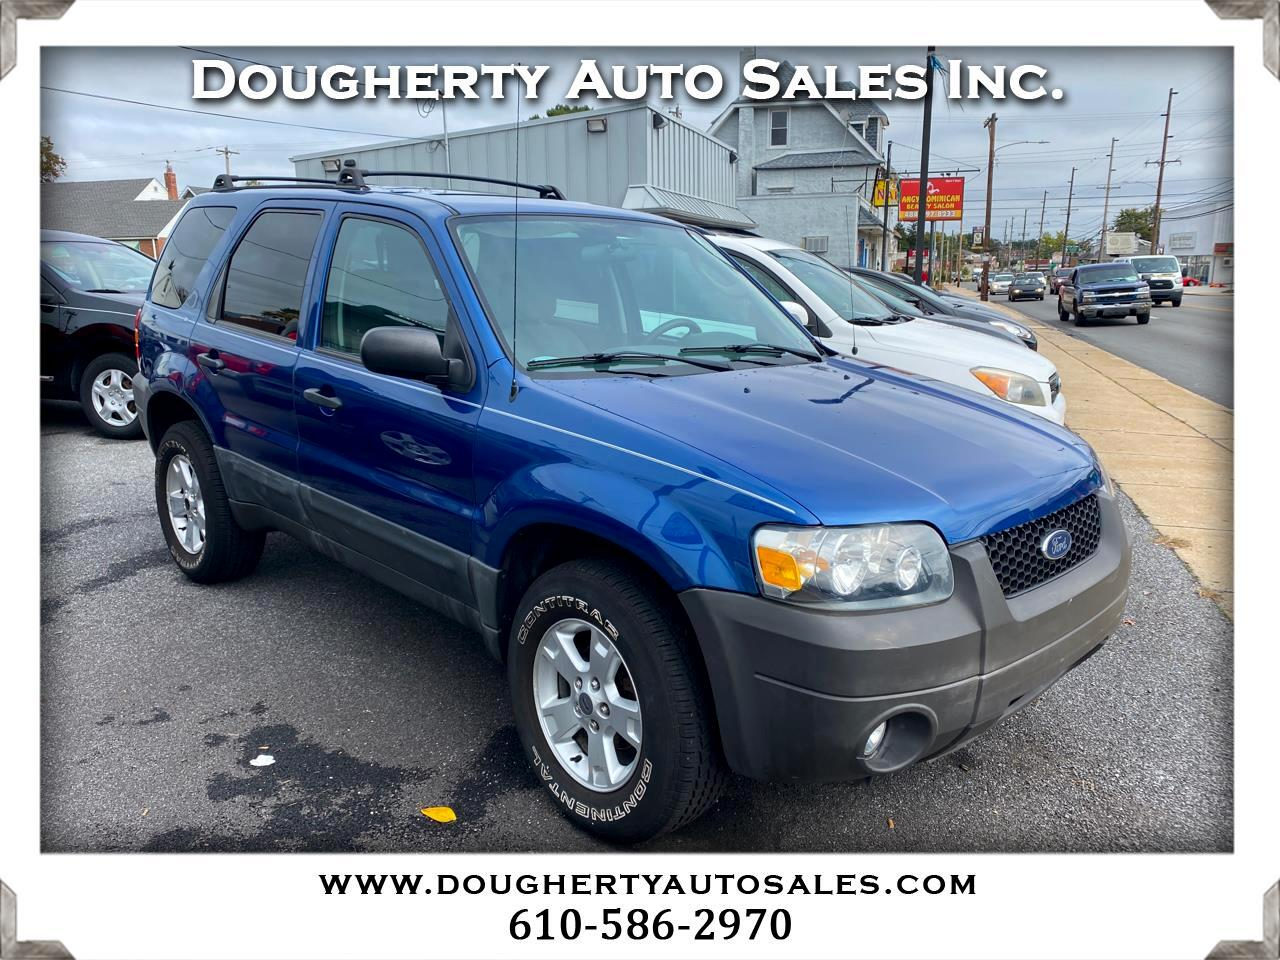 Ford Escape 2WD 4dr V6 Auto XLT 2007